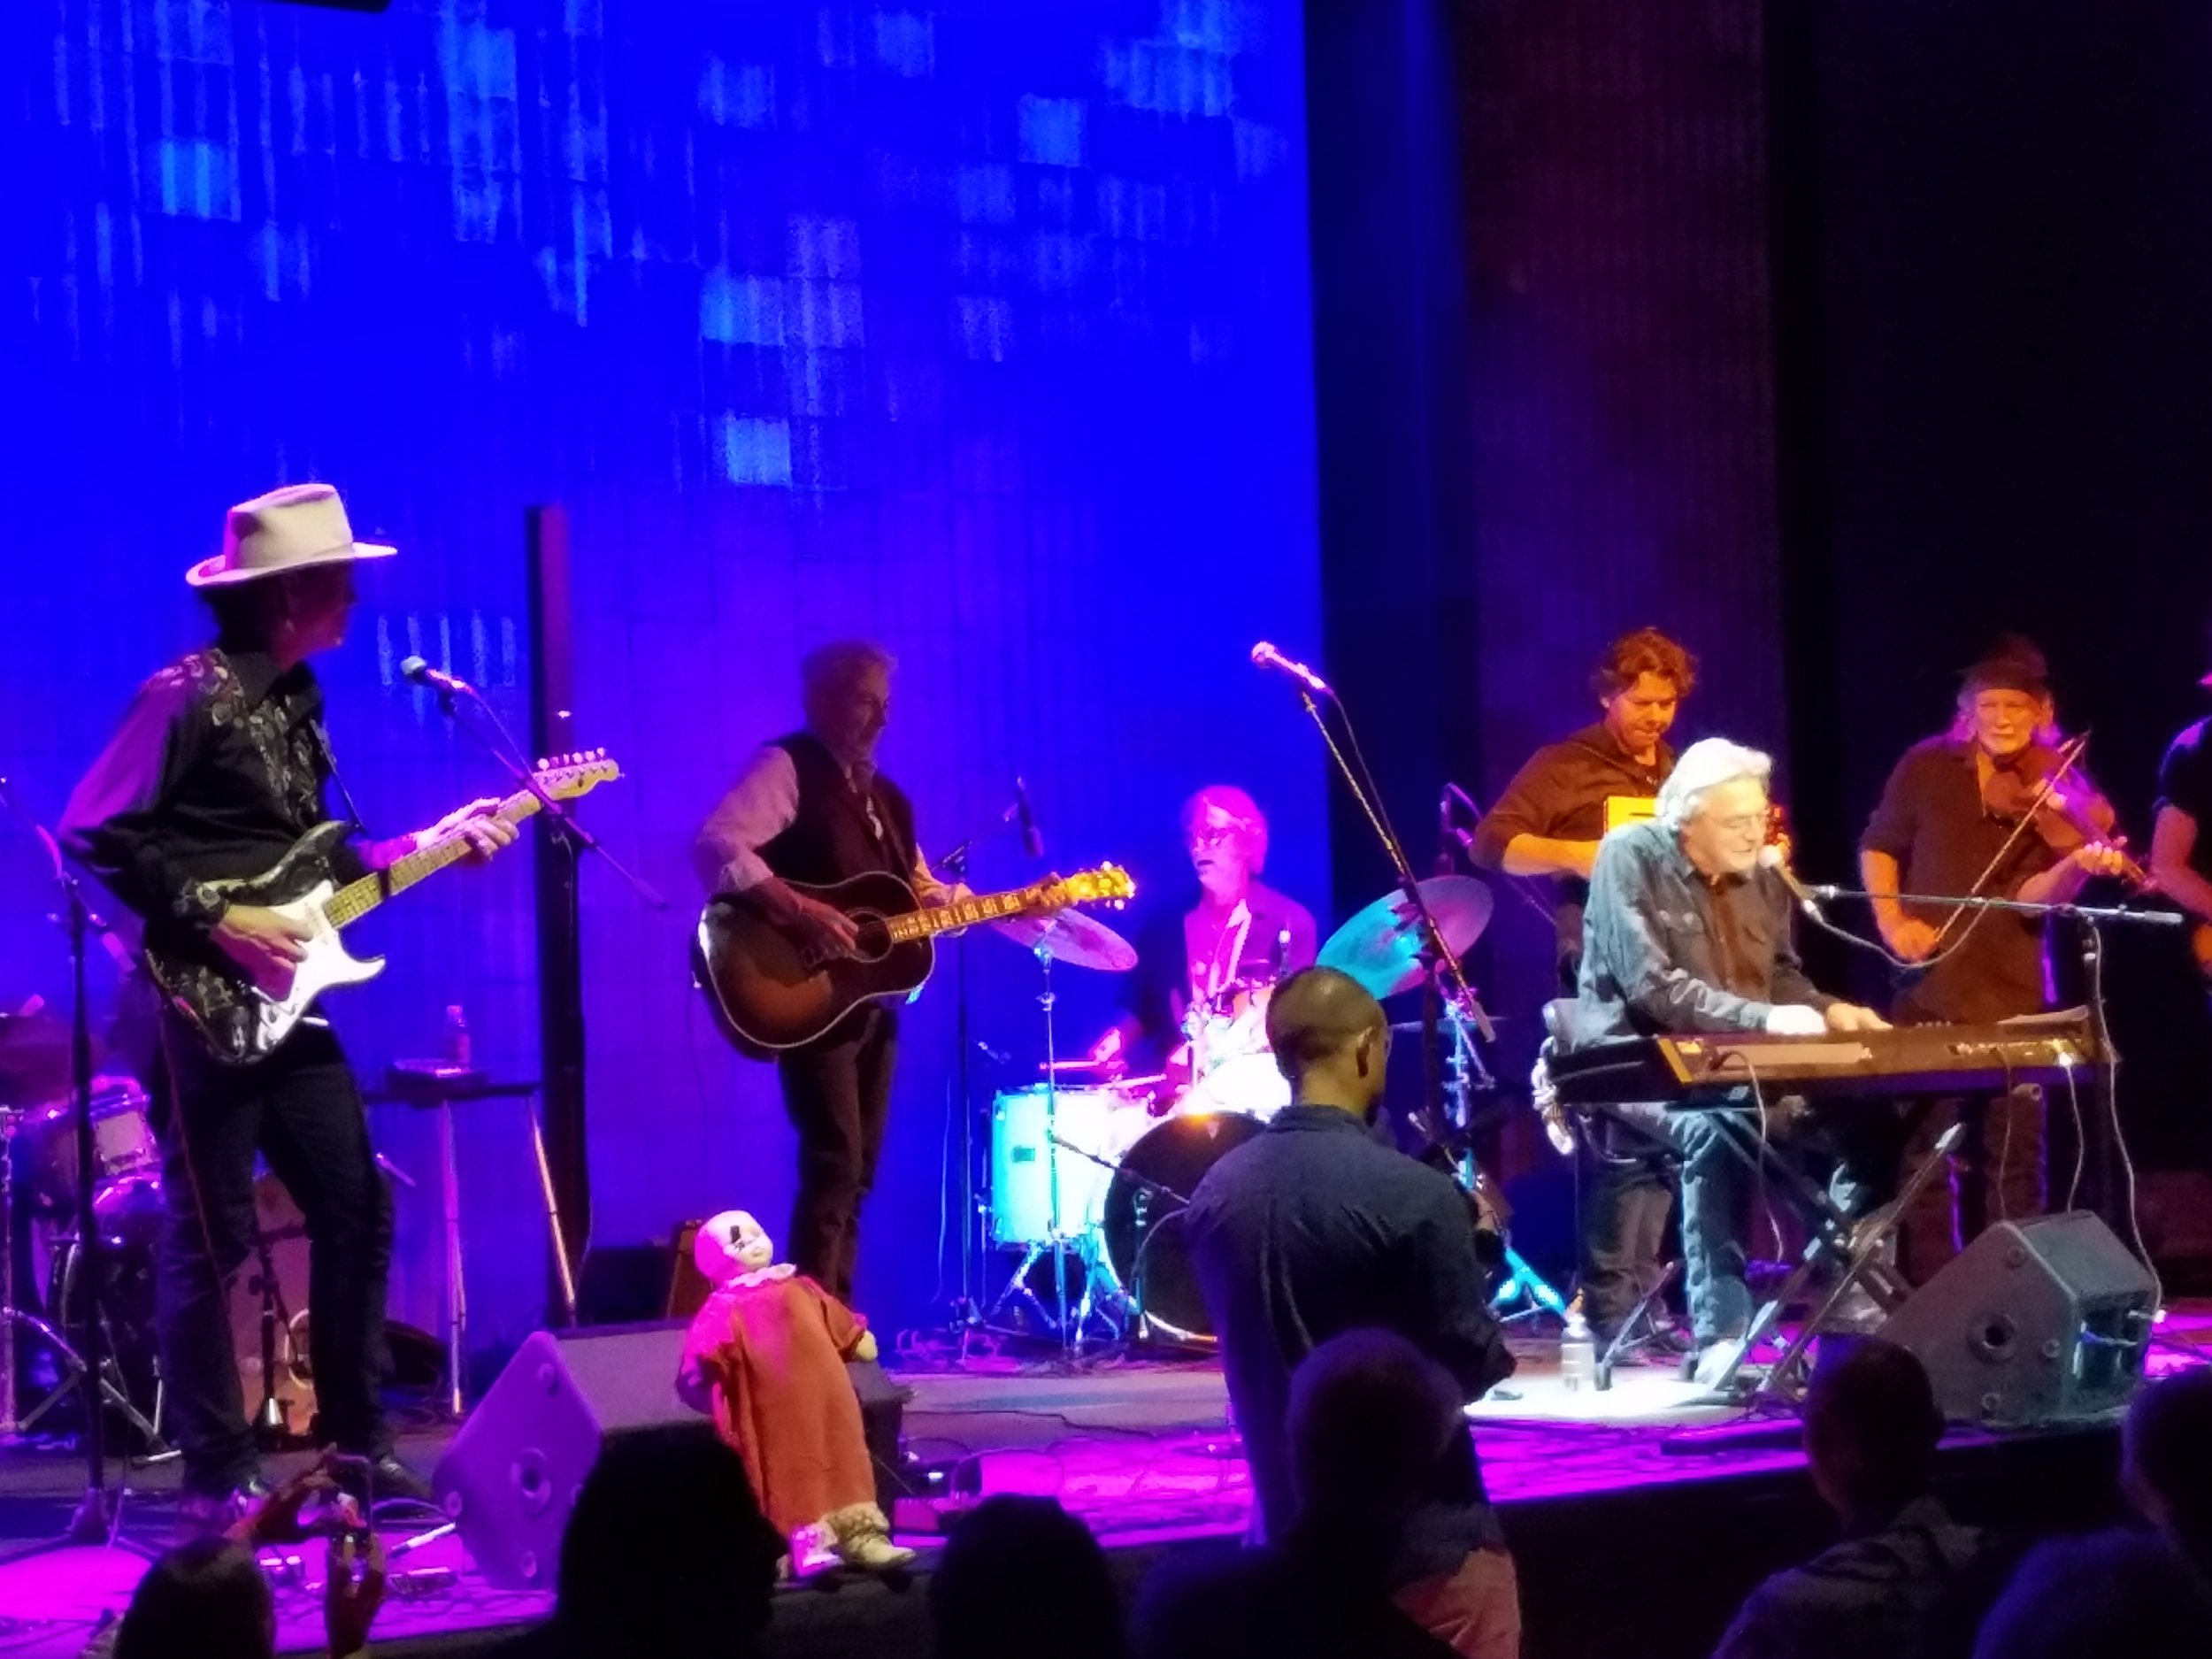 Marfa, Texas. Terry Allen at keyboard, his son Bukka behind him on the accordion. Joe Ely on guitar, second left.